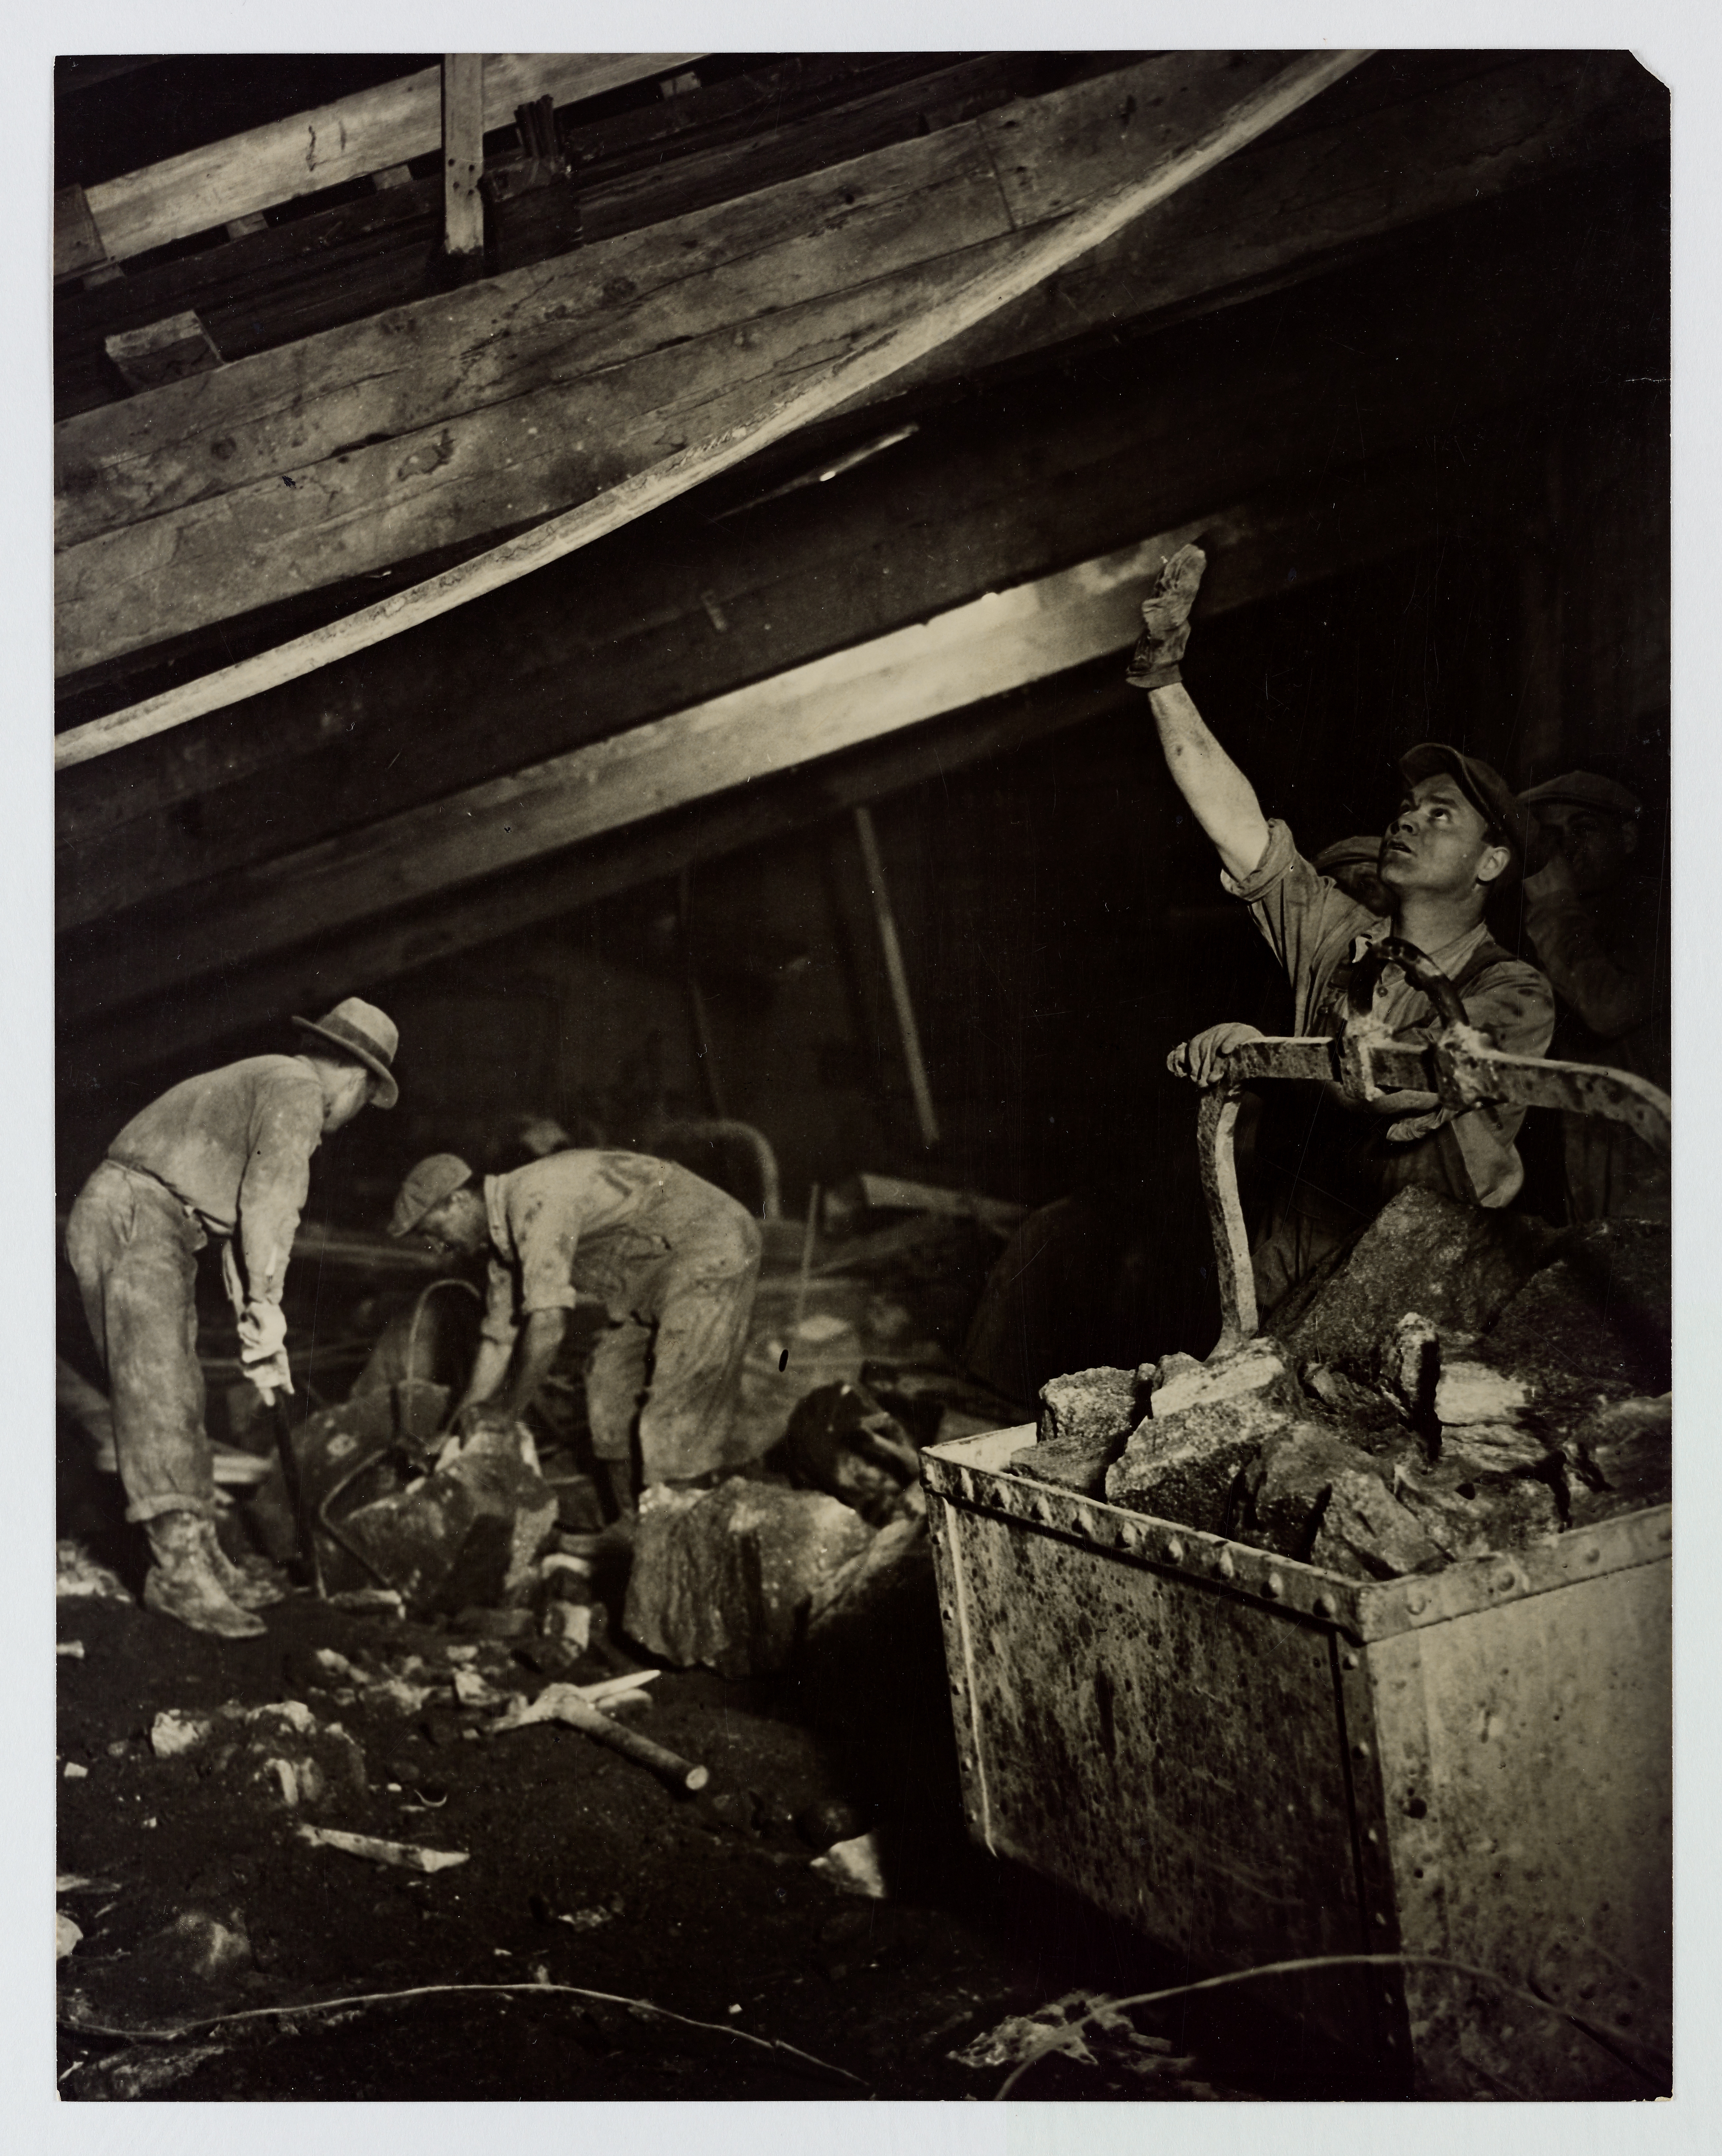 [Construction workers excavating and digging underground, New York City, circa 1920s-1930s].